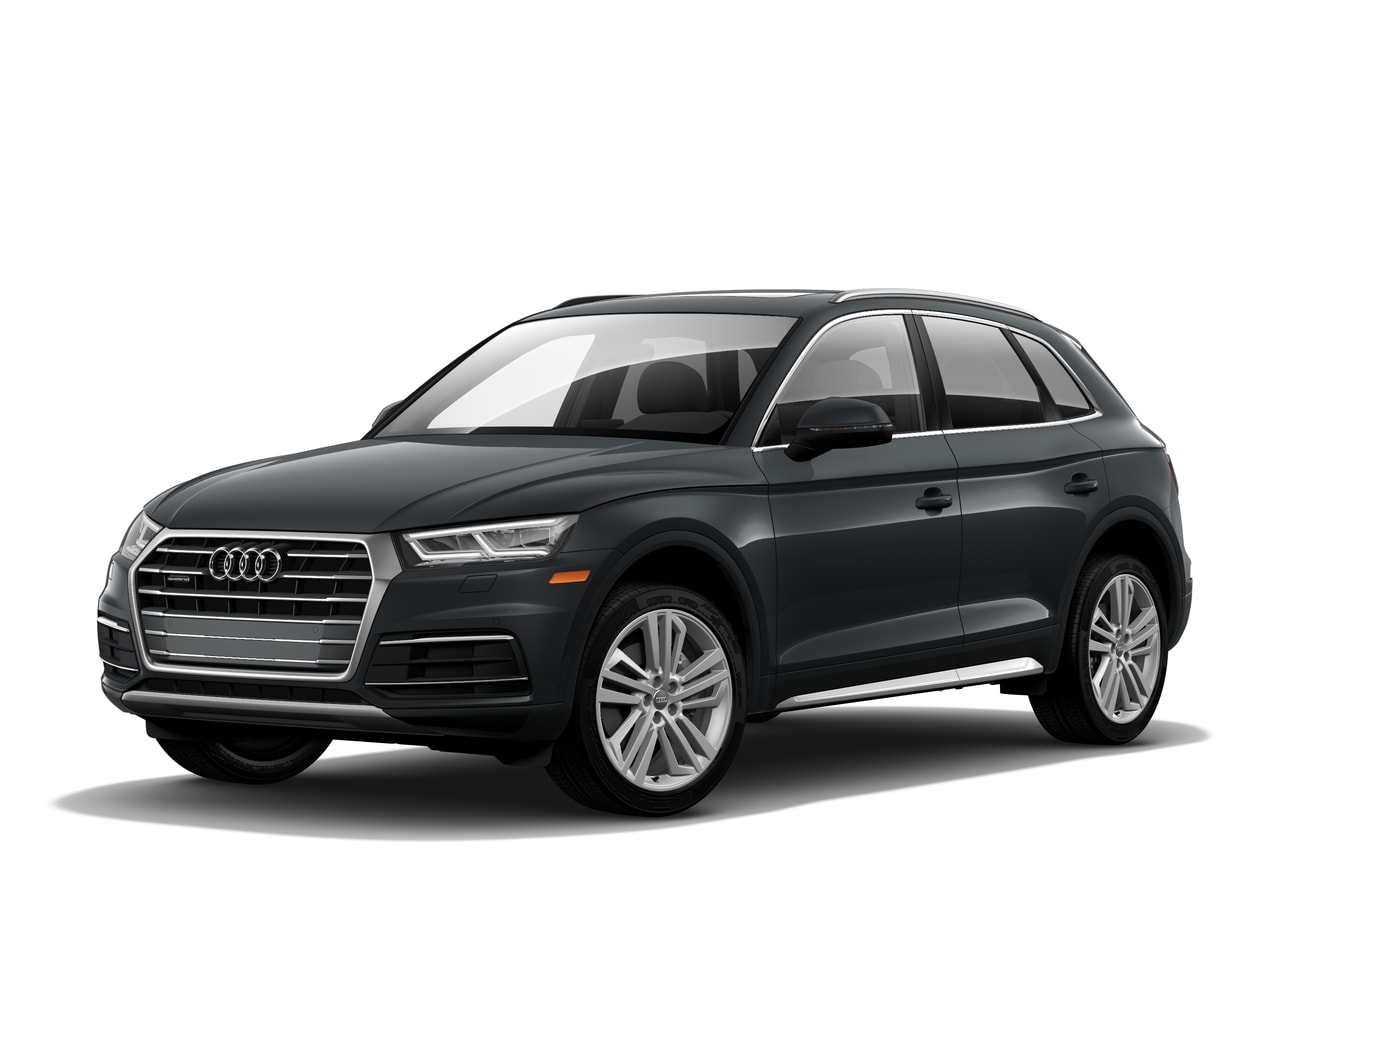 New 2018 Audi Q5 2.0T Premium Plus SUV near Hartford